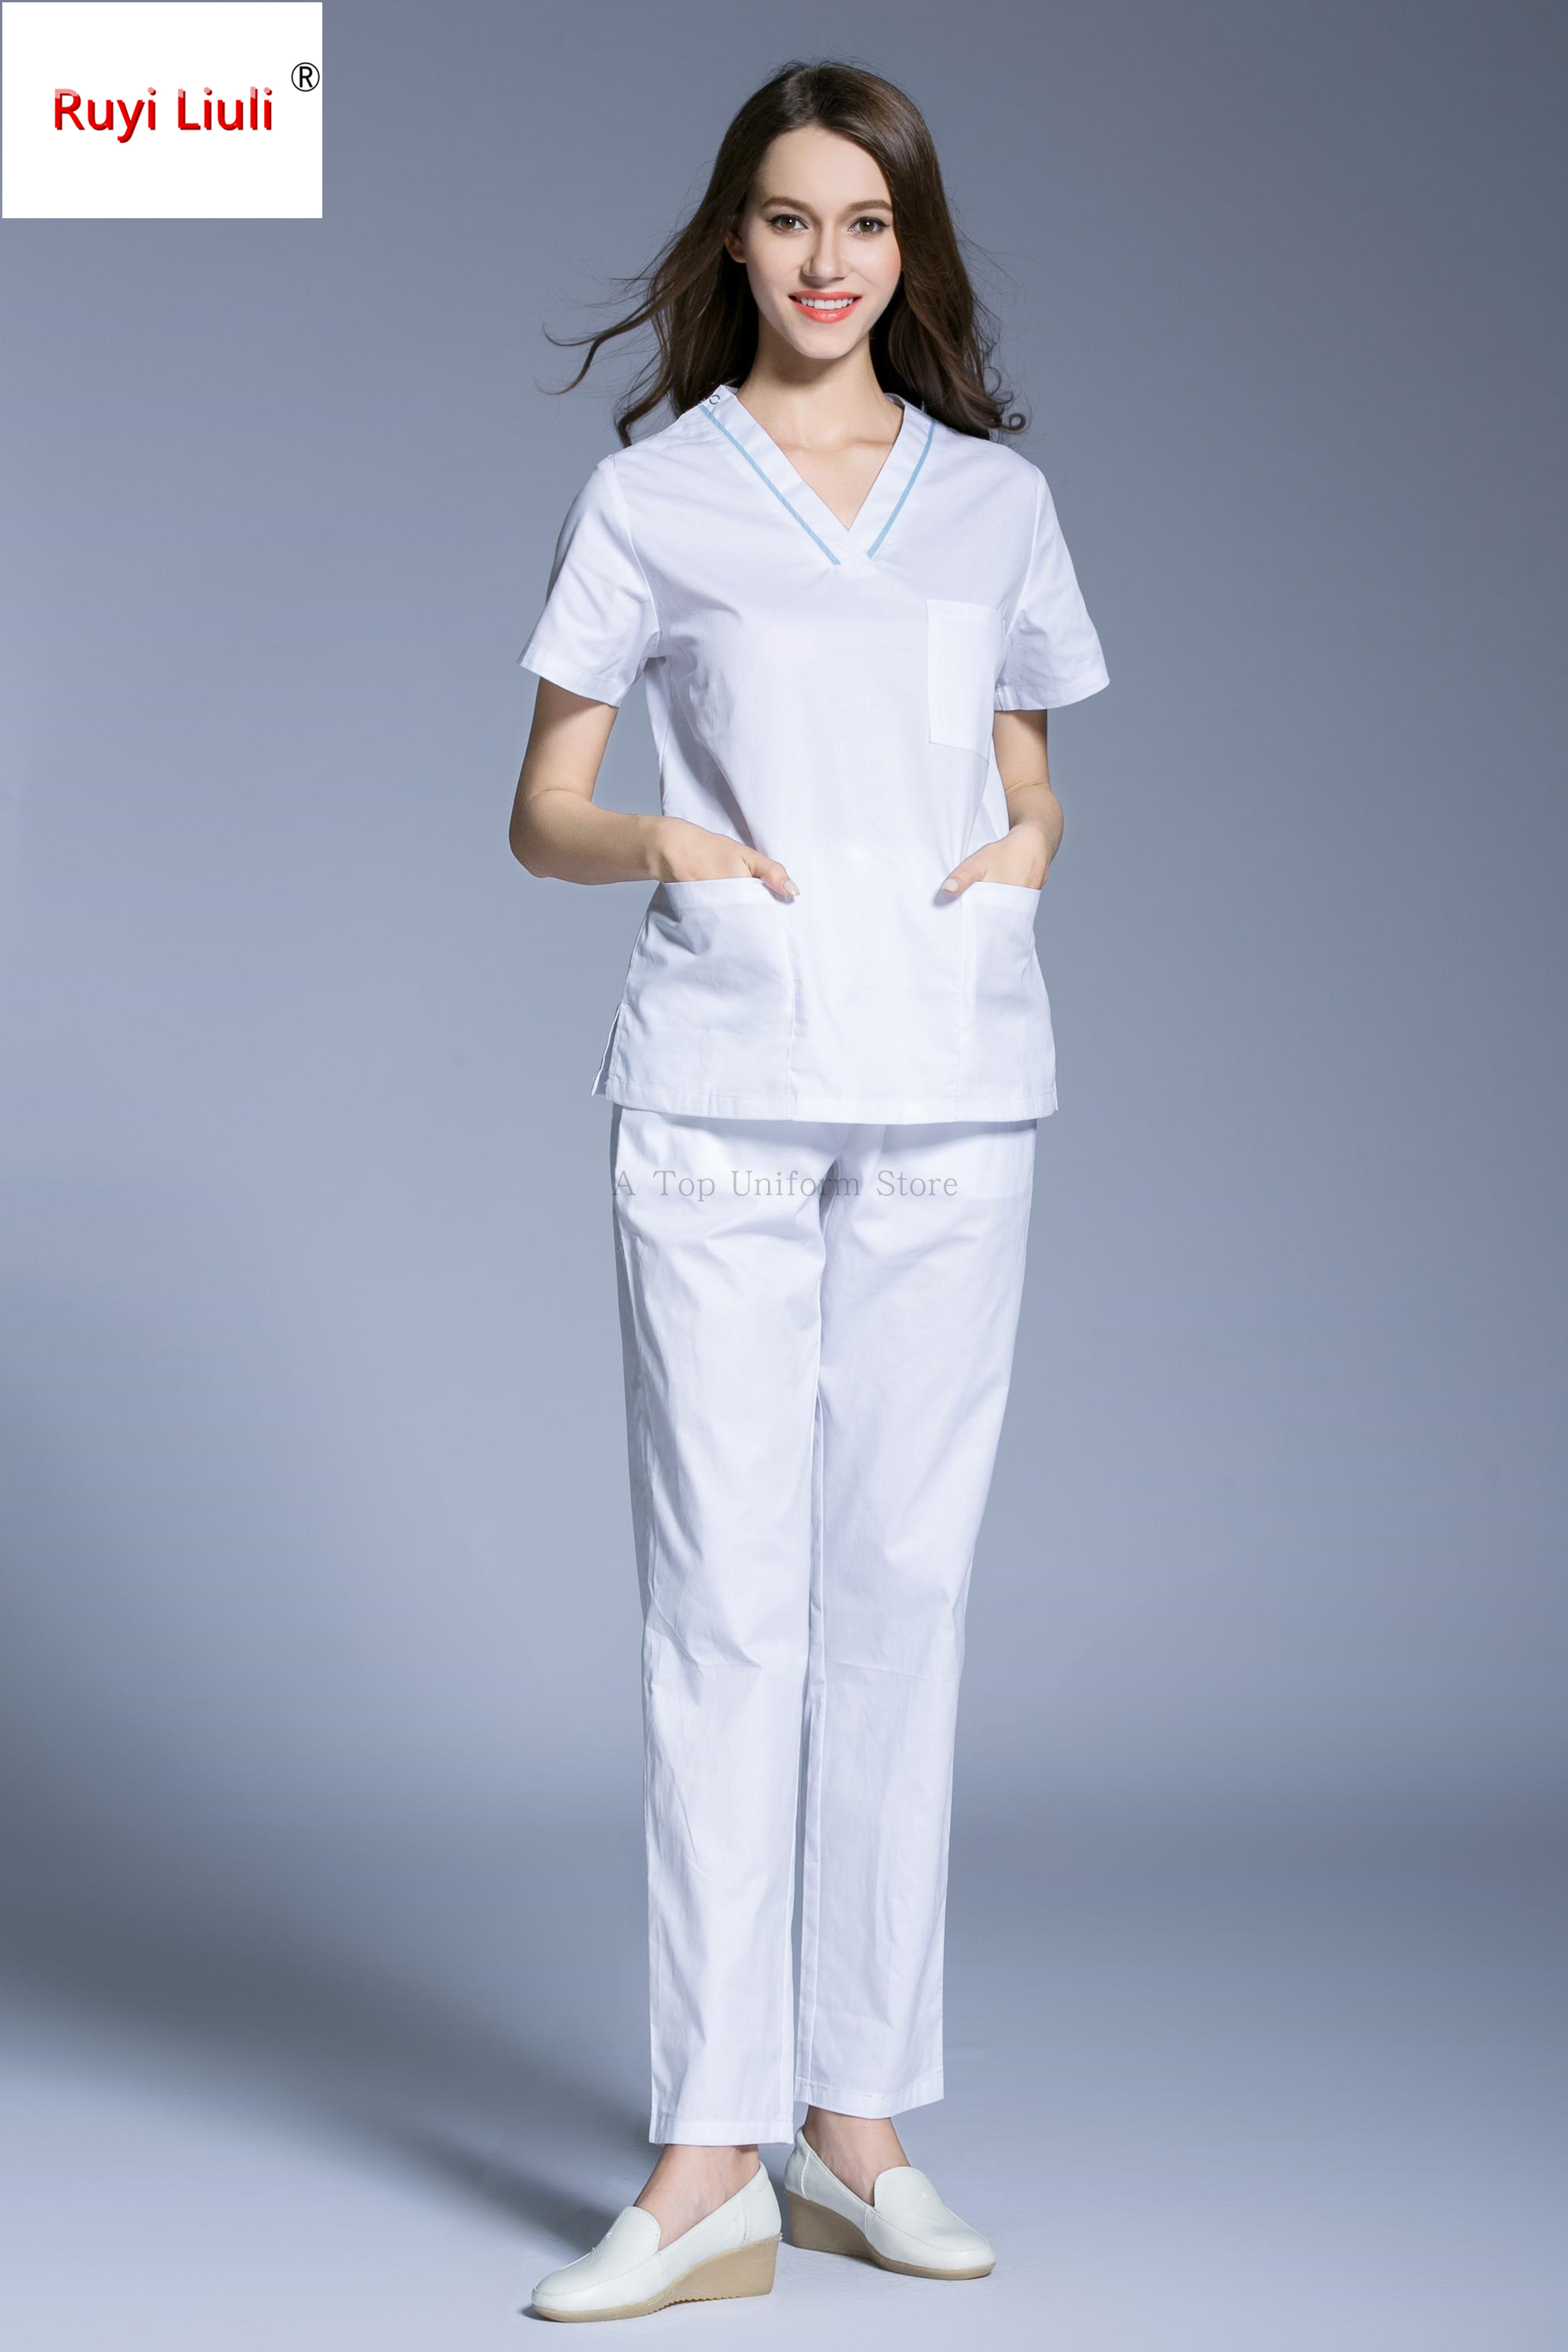 New Fashion Medical Uniforms Nursing Scrubs Clothes Short Sleeve Coat Summer Work Wear Uniform Women beauty